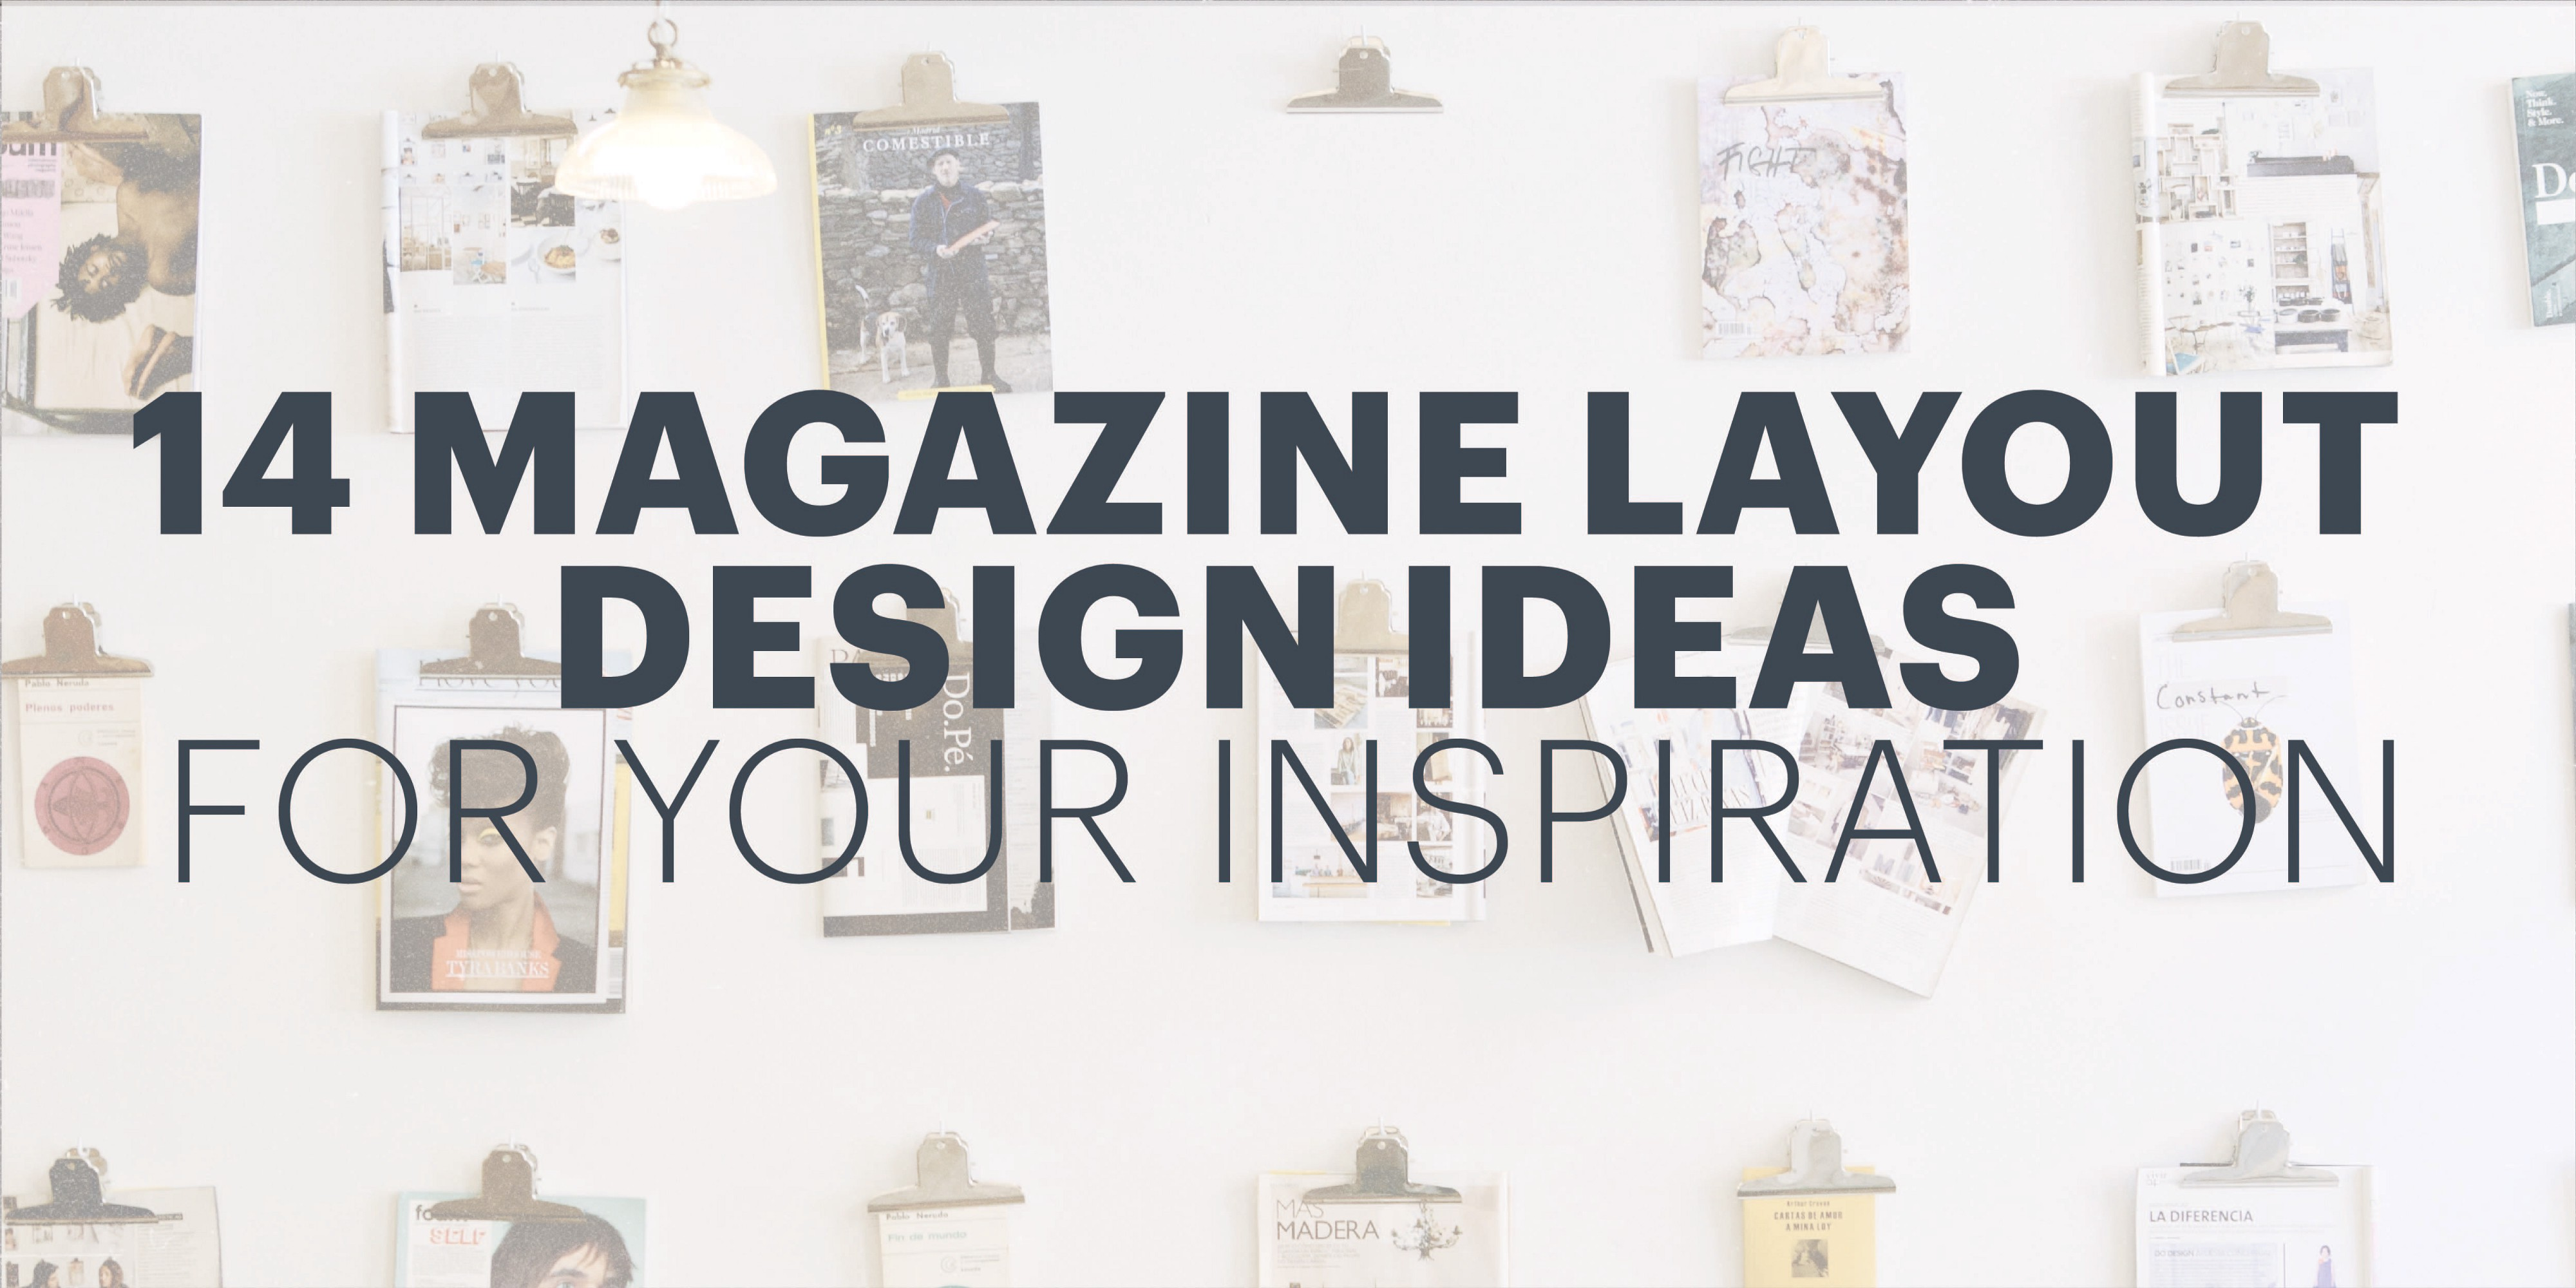 14 Magazine Layout Design Ideas For Your Inspiration By Lucidpress Lucidpress Medium